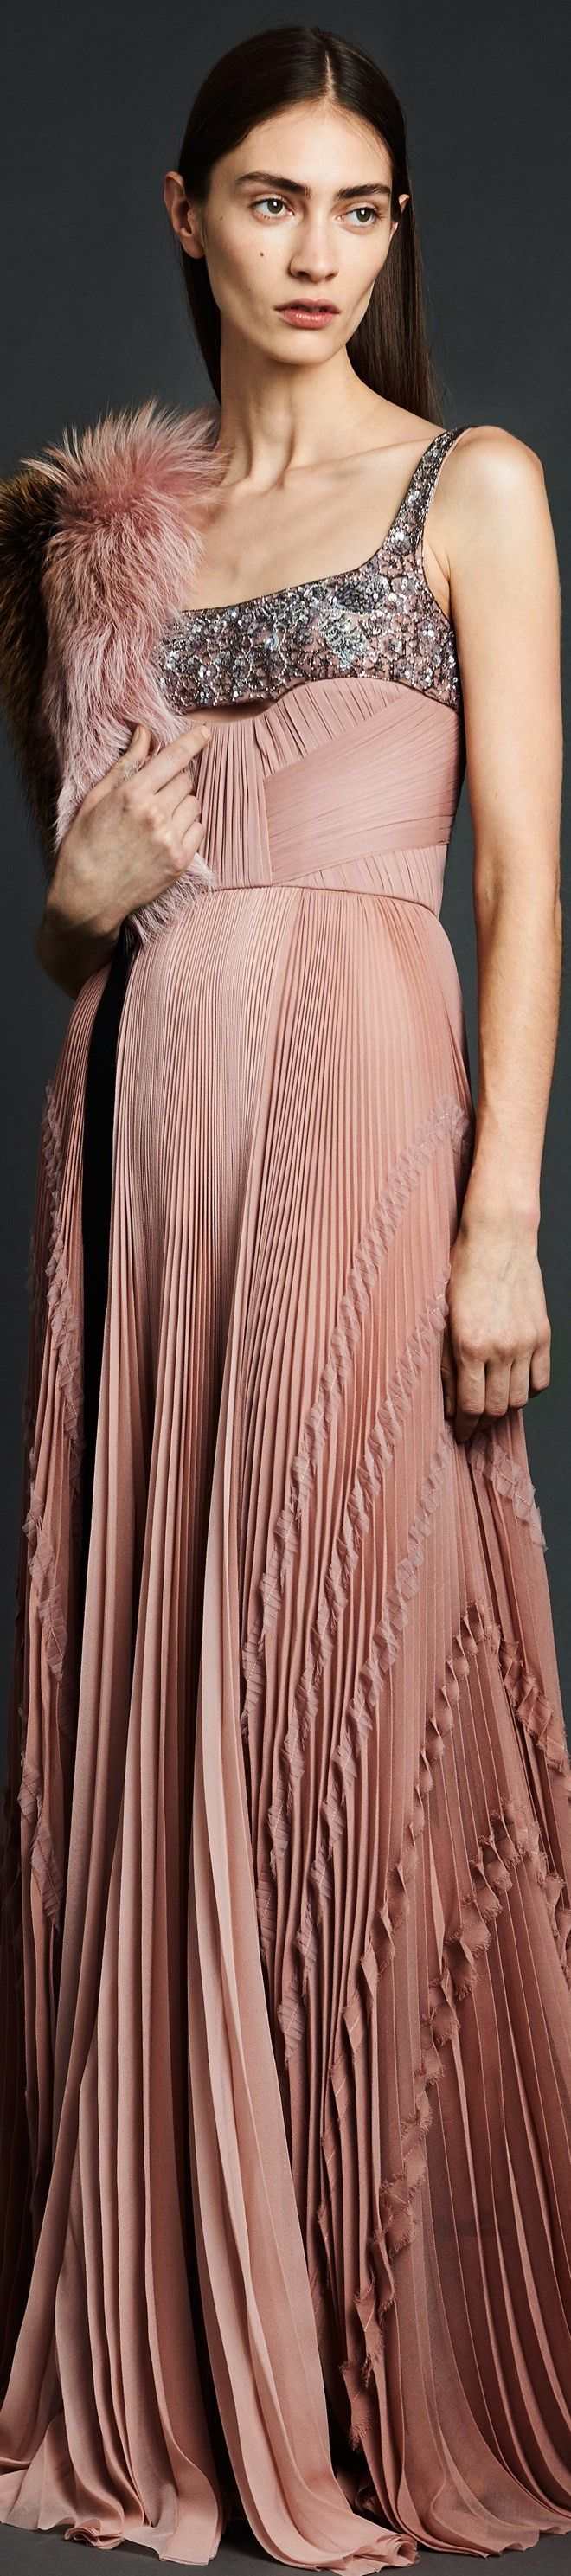 Photo of J.Mendel Pre Fall 2017 Lookbook Collection Pinned By Whirlyp…